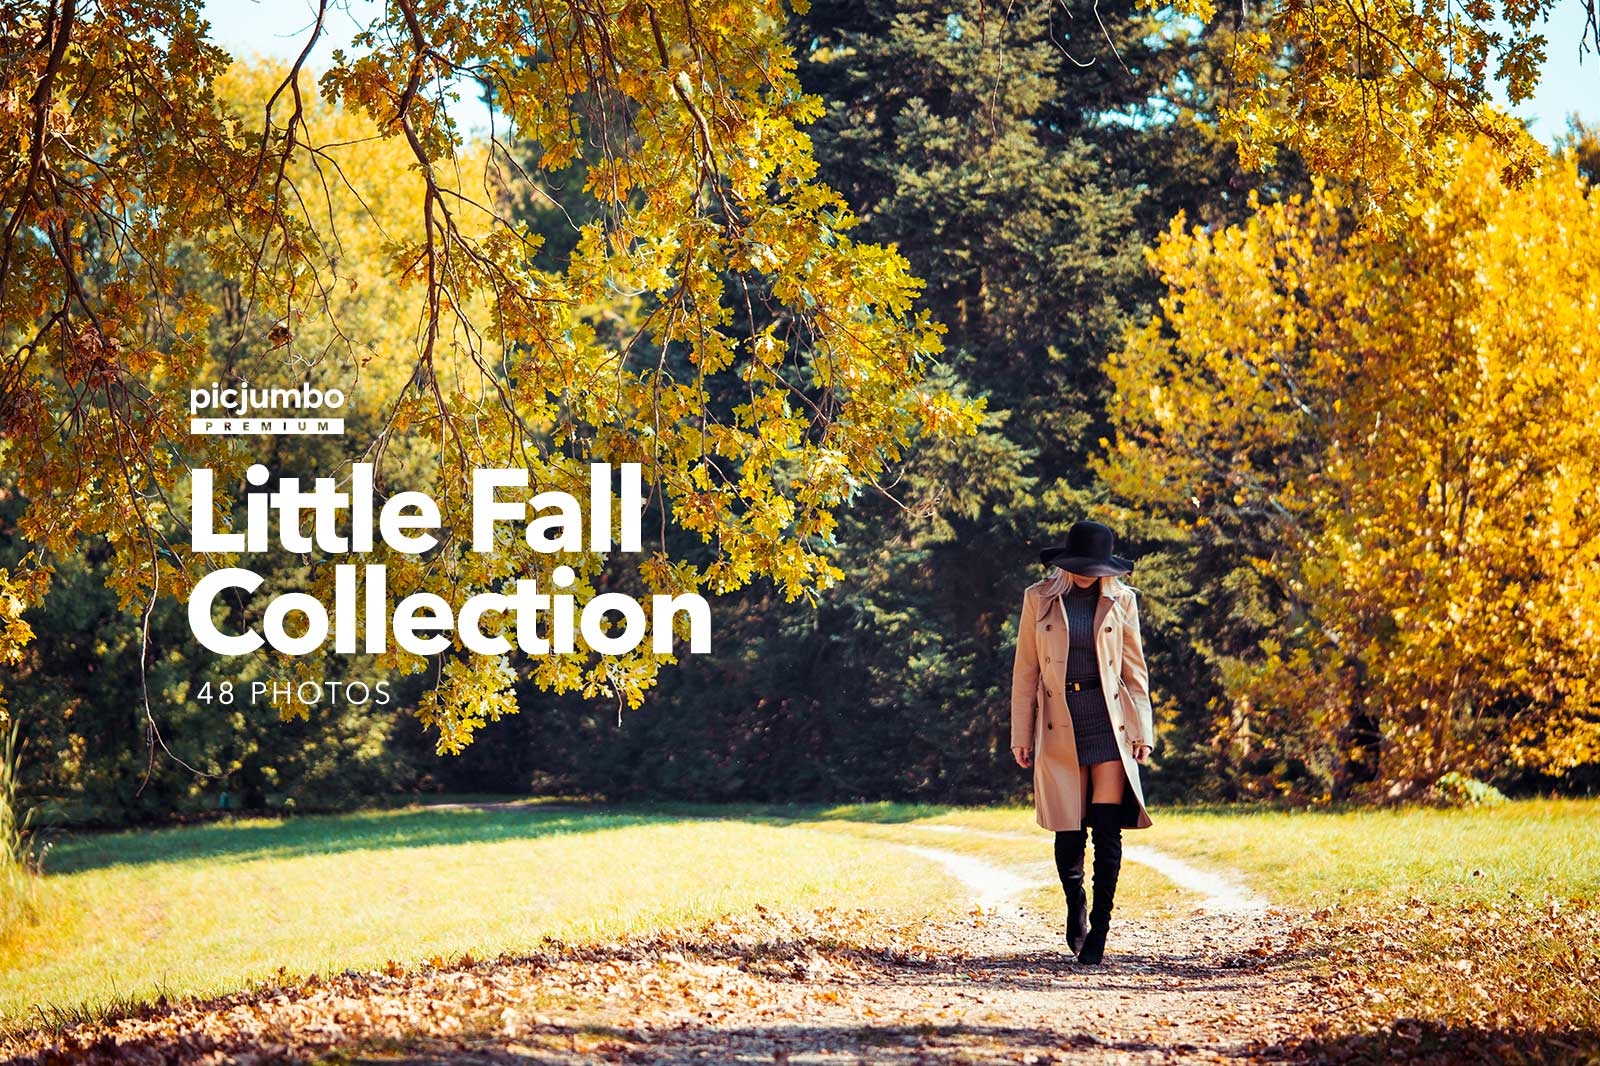 Little Fall Collection